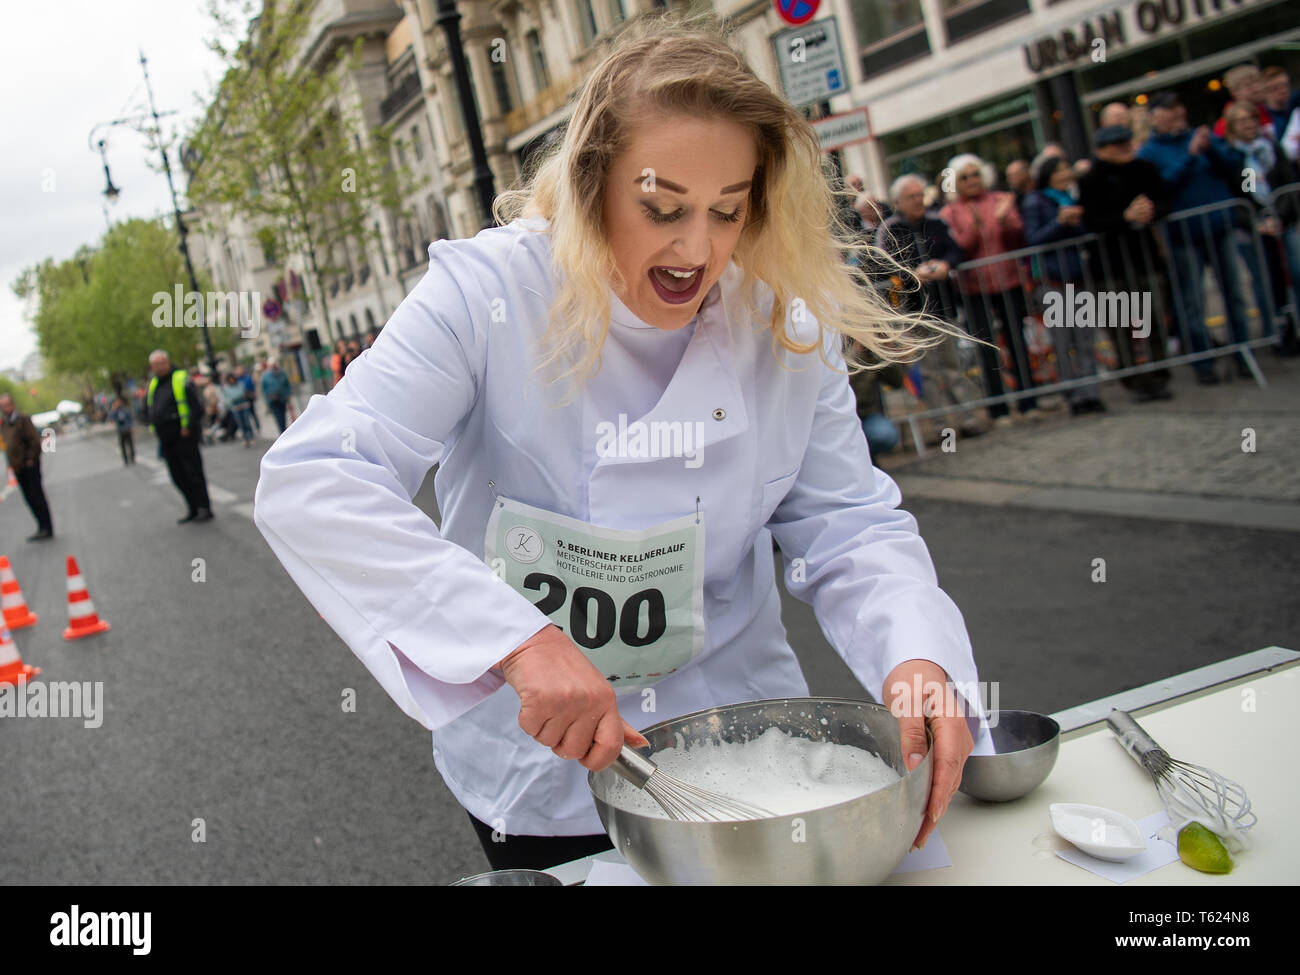 Berlin, Germany. 28th Apr, 2019. A cook beats Eischnee for a dessert at the Berliner Kellnerlauf on Kurfürstendamm. Waiters, barkeepers, chefs and bellboys compete in the art of fast gastronomy. The 400 meter long running track is located on the one-sided closed Ku'damm. Credit: Monika Skolimowska/dpa-Zentralbild/dpa/Alamy Live News Stock Photo